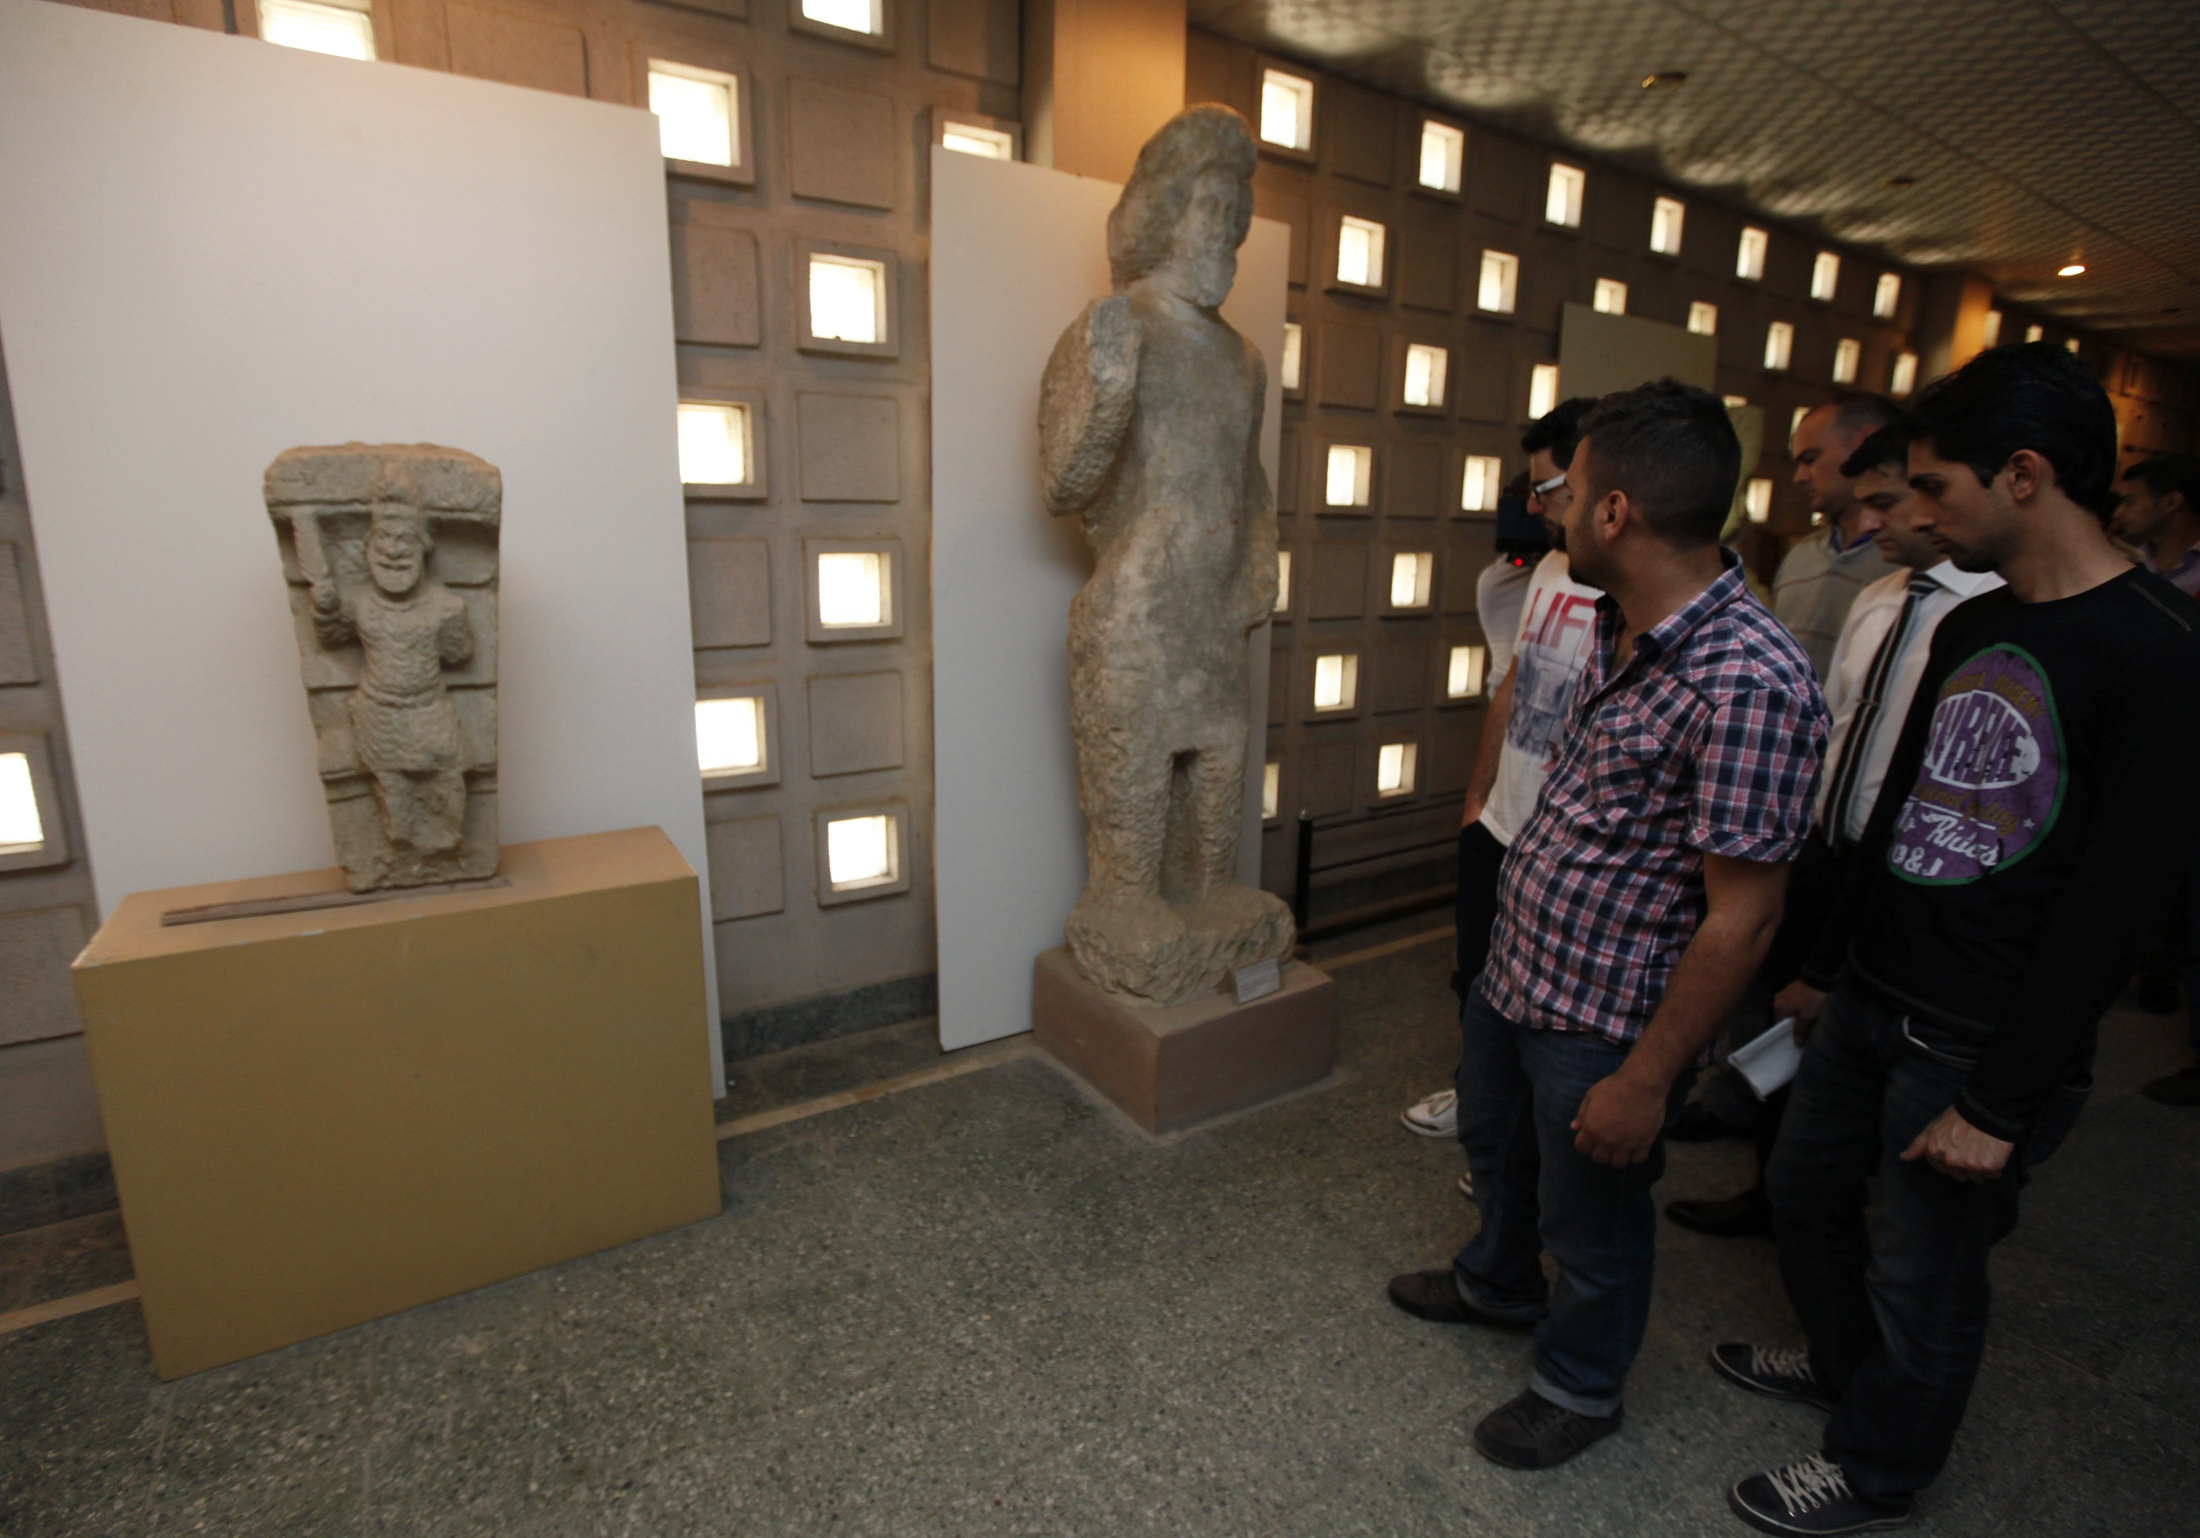 People look at a limestone statue, dating back to the second and third century AD.